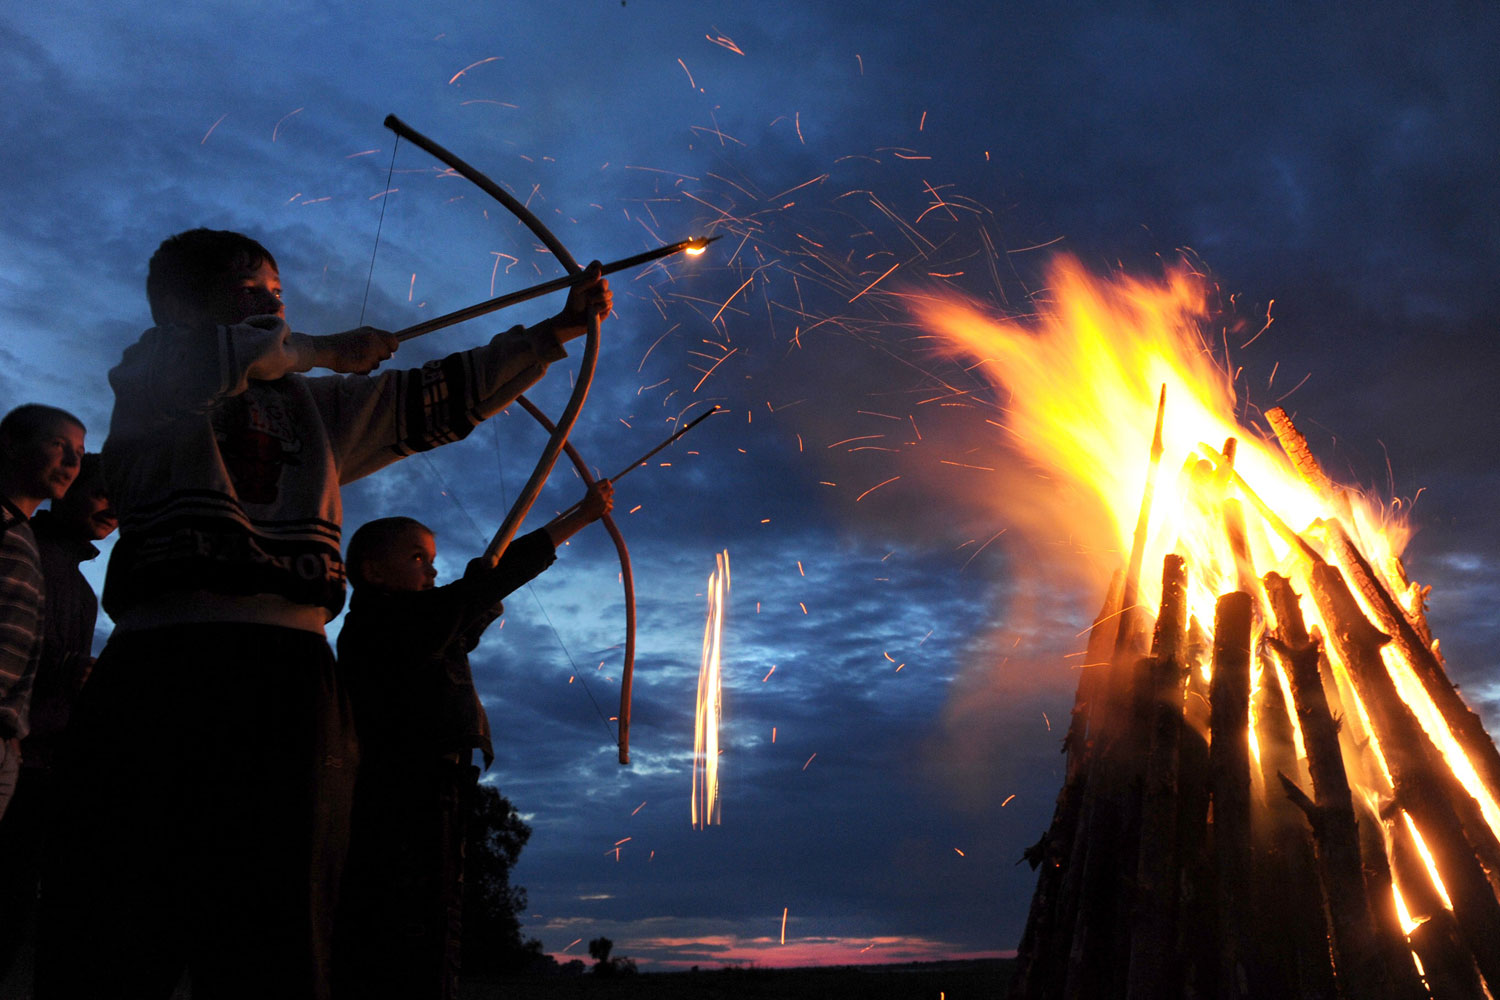 July 7, 2011. Boys shoot flaming arrows during celebrations for Ivan Kupala, the feast of St John the Baptist, a traditional Slavic orthodox holiday celebrating the summer solstice, 270 kilometers south from Minsk in Turov.